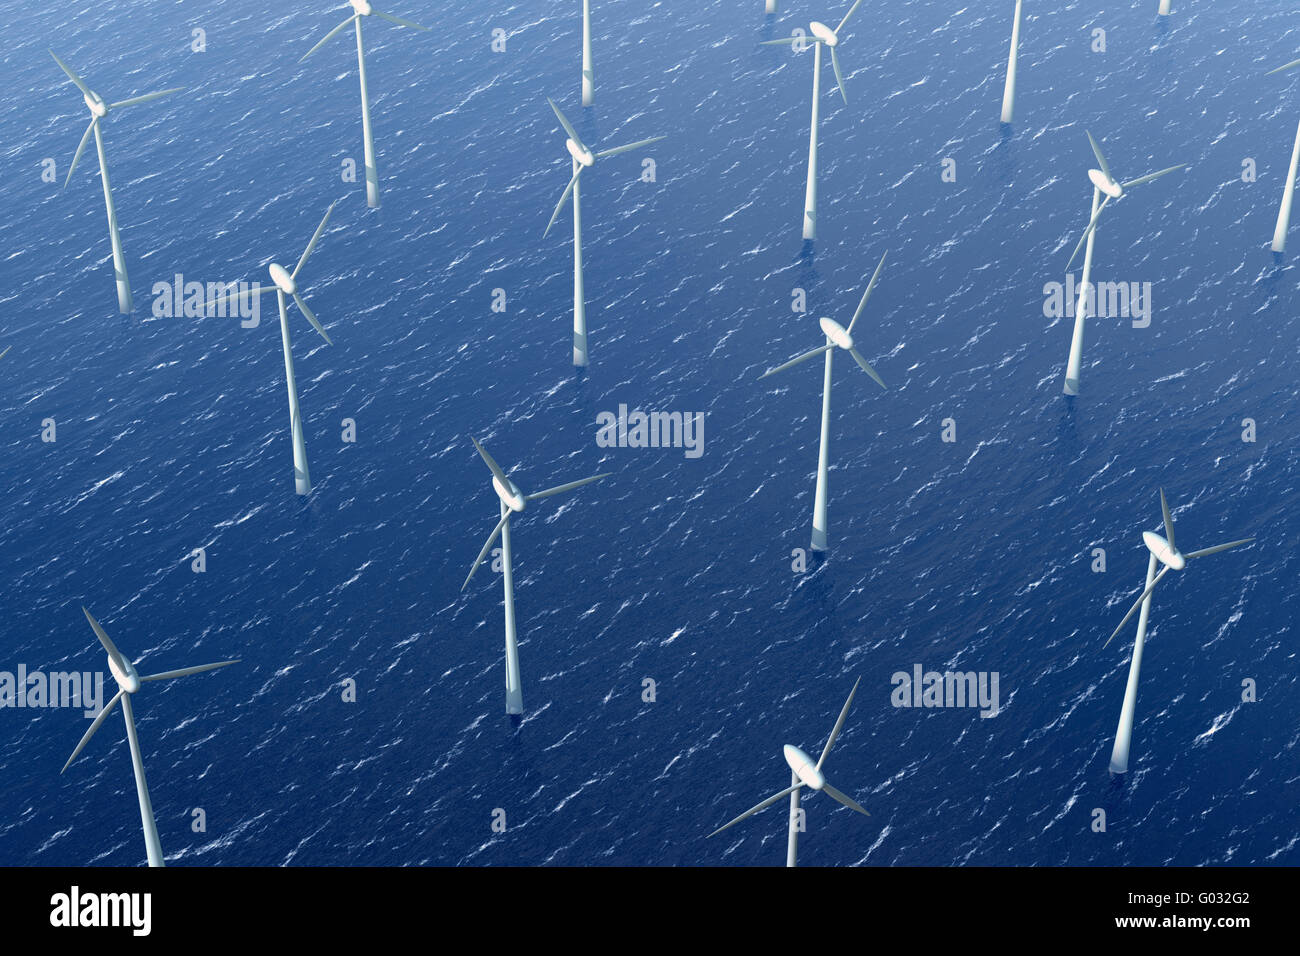 Wind turbines in the water - Stock Image